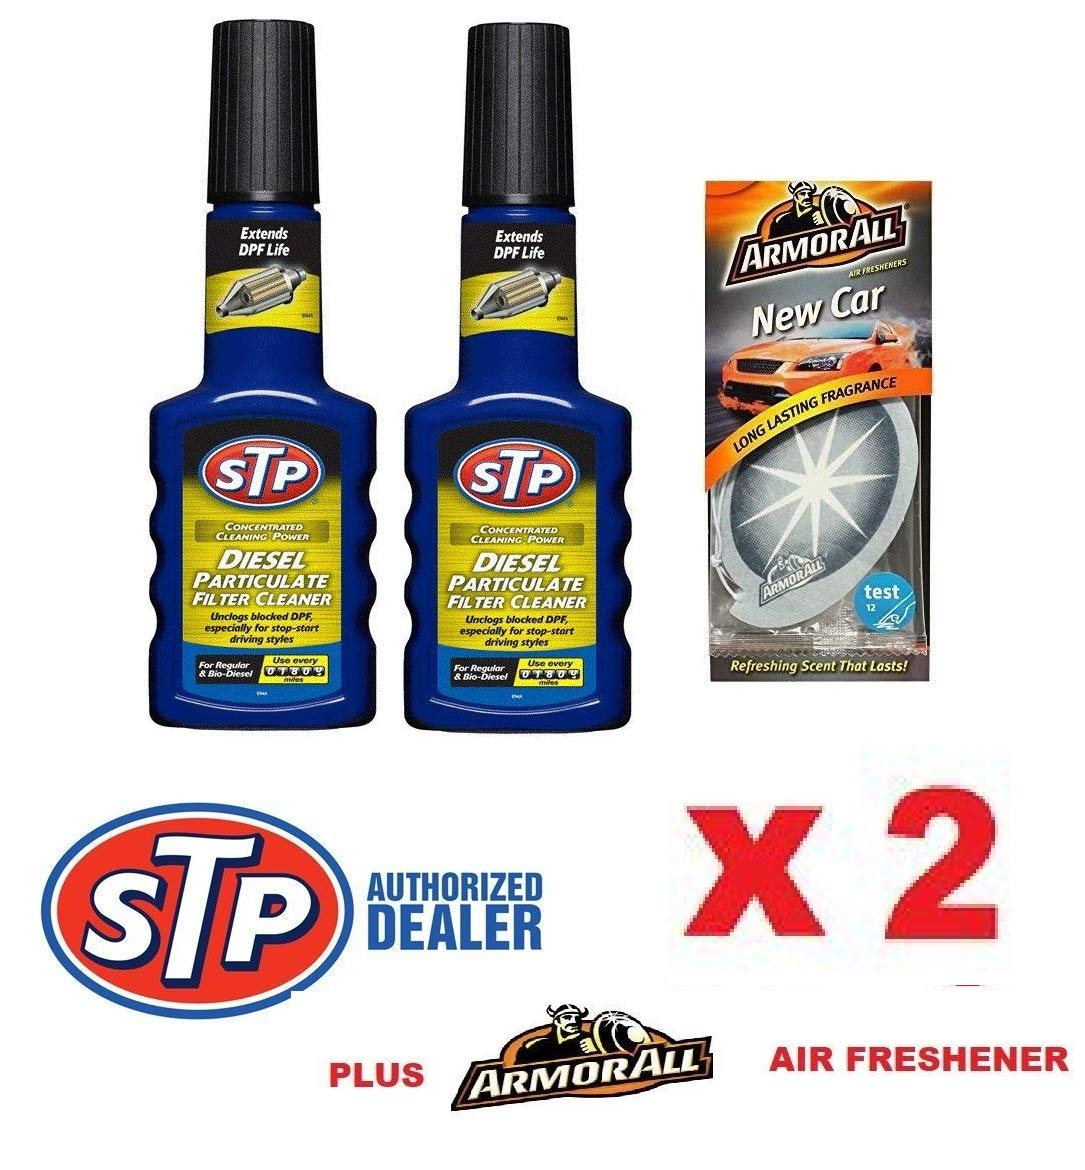 Roaduserdirect Car Care Packages STP DIESEL PACK - 2 x DPF Particulate Filter Cleaner Fuel Additive & Emoji Fresh